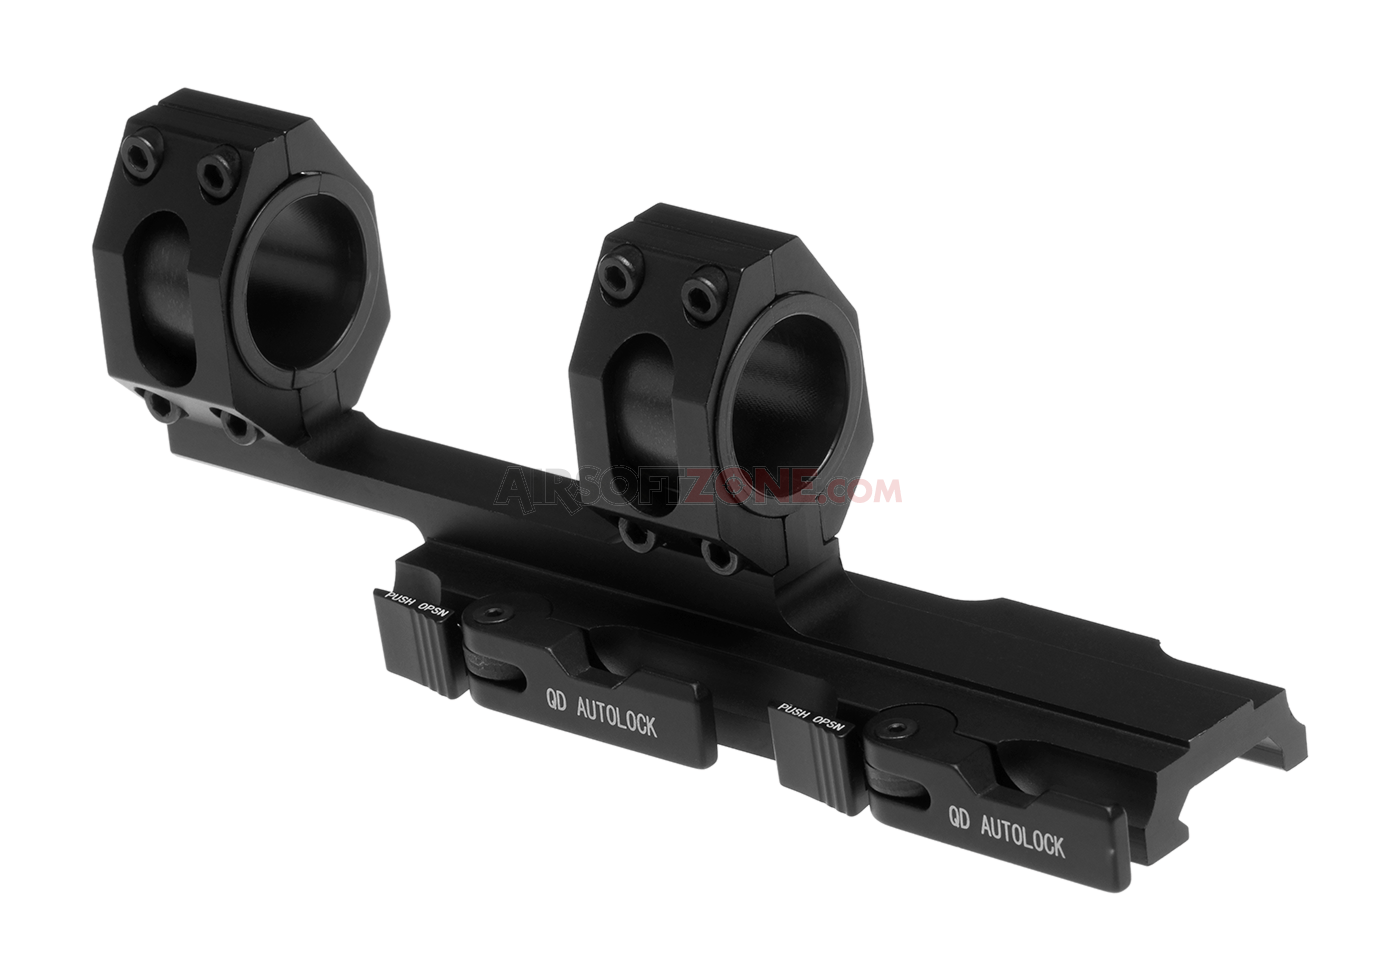 Tactical Top Rail Extended Mount Base - 25.4mm / 30mm imagine